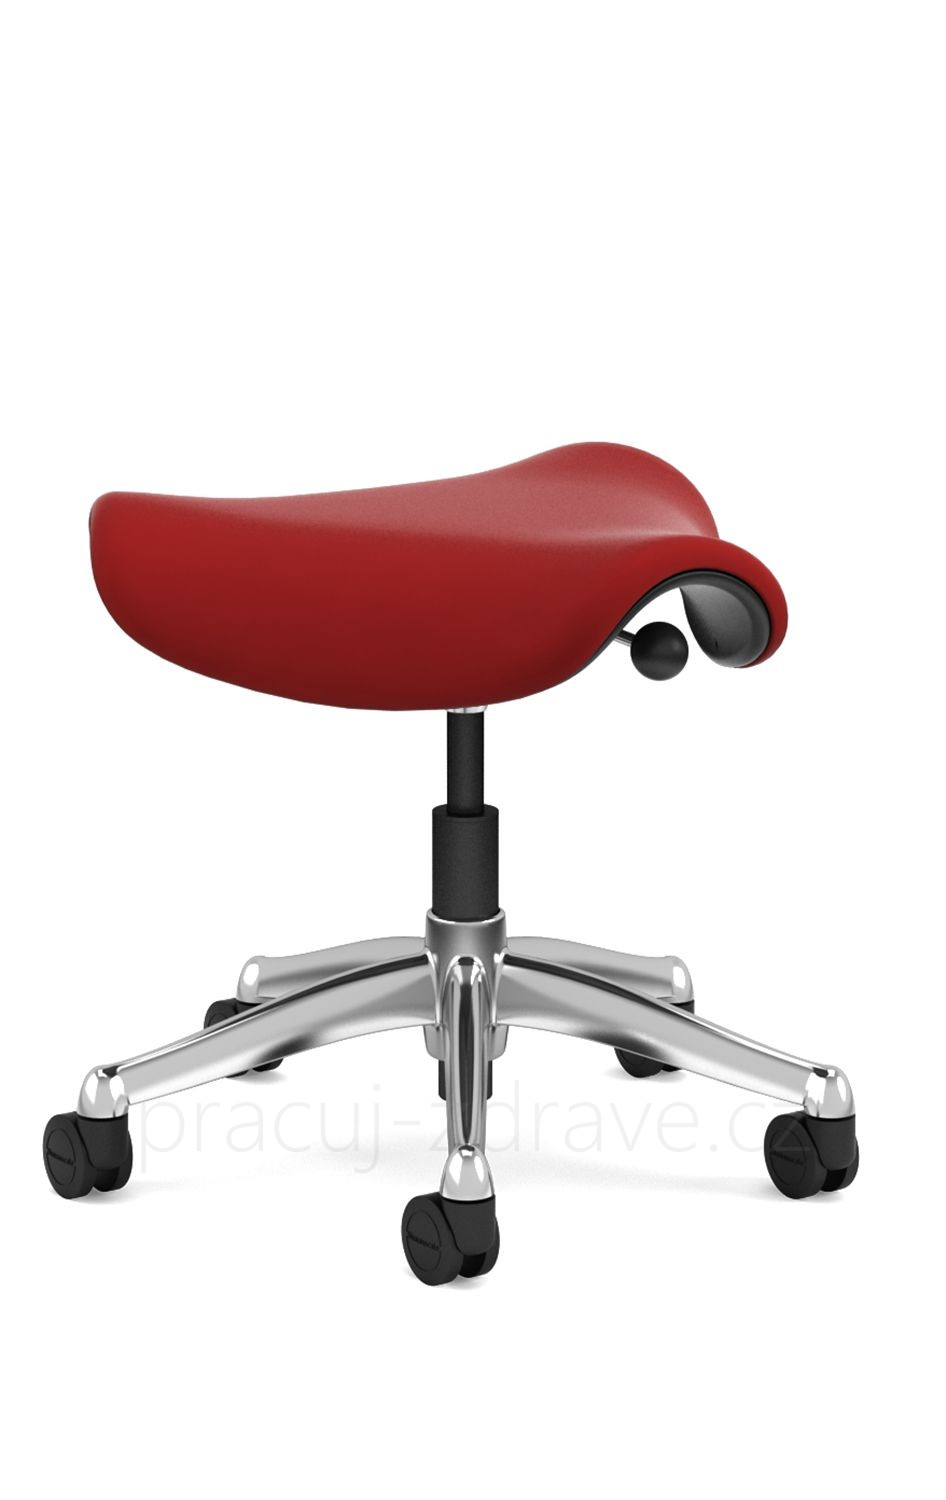 Sedlová židle Humanscale Saddle Seat - lucky red